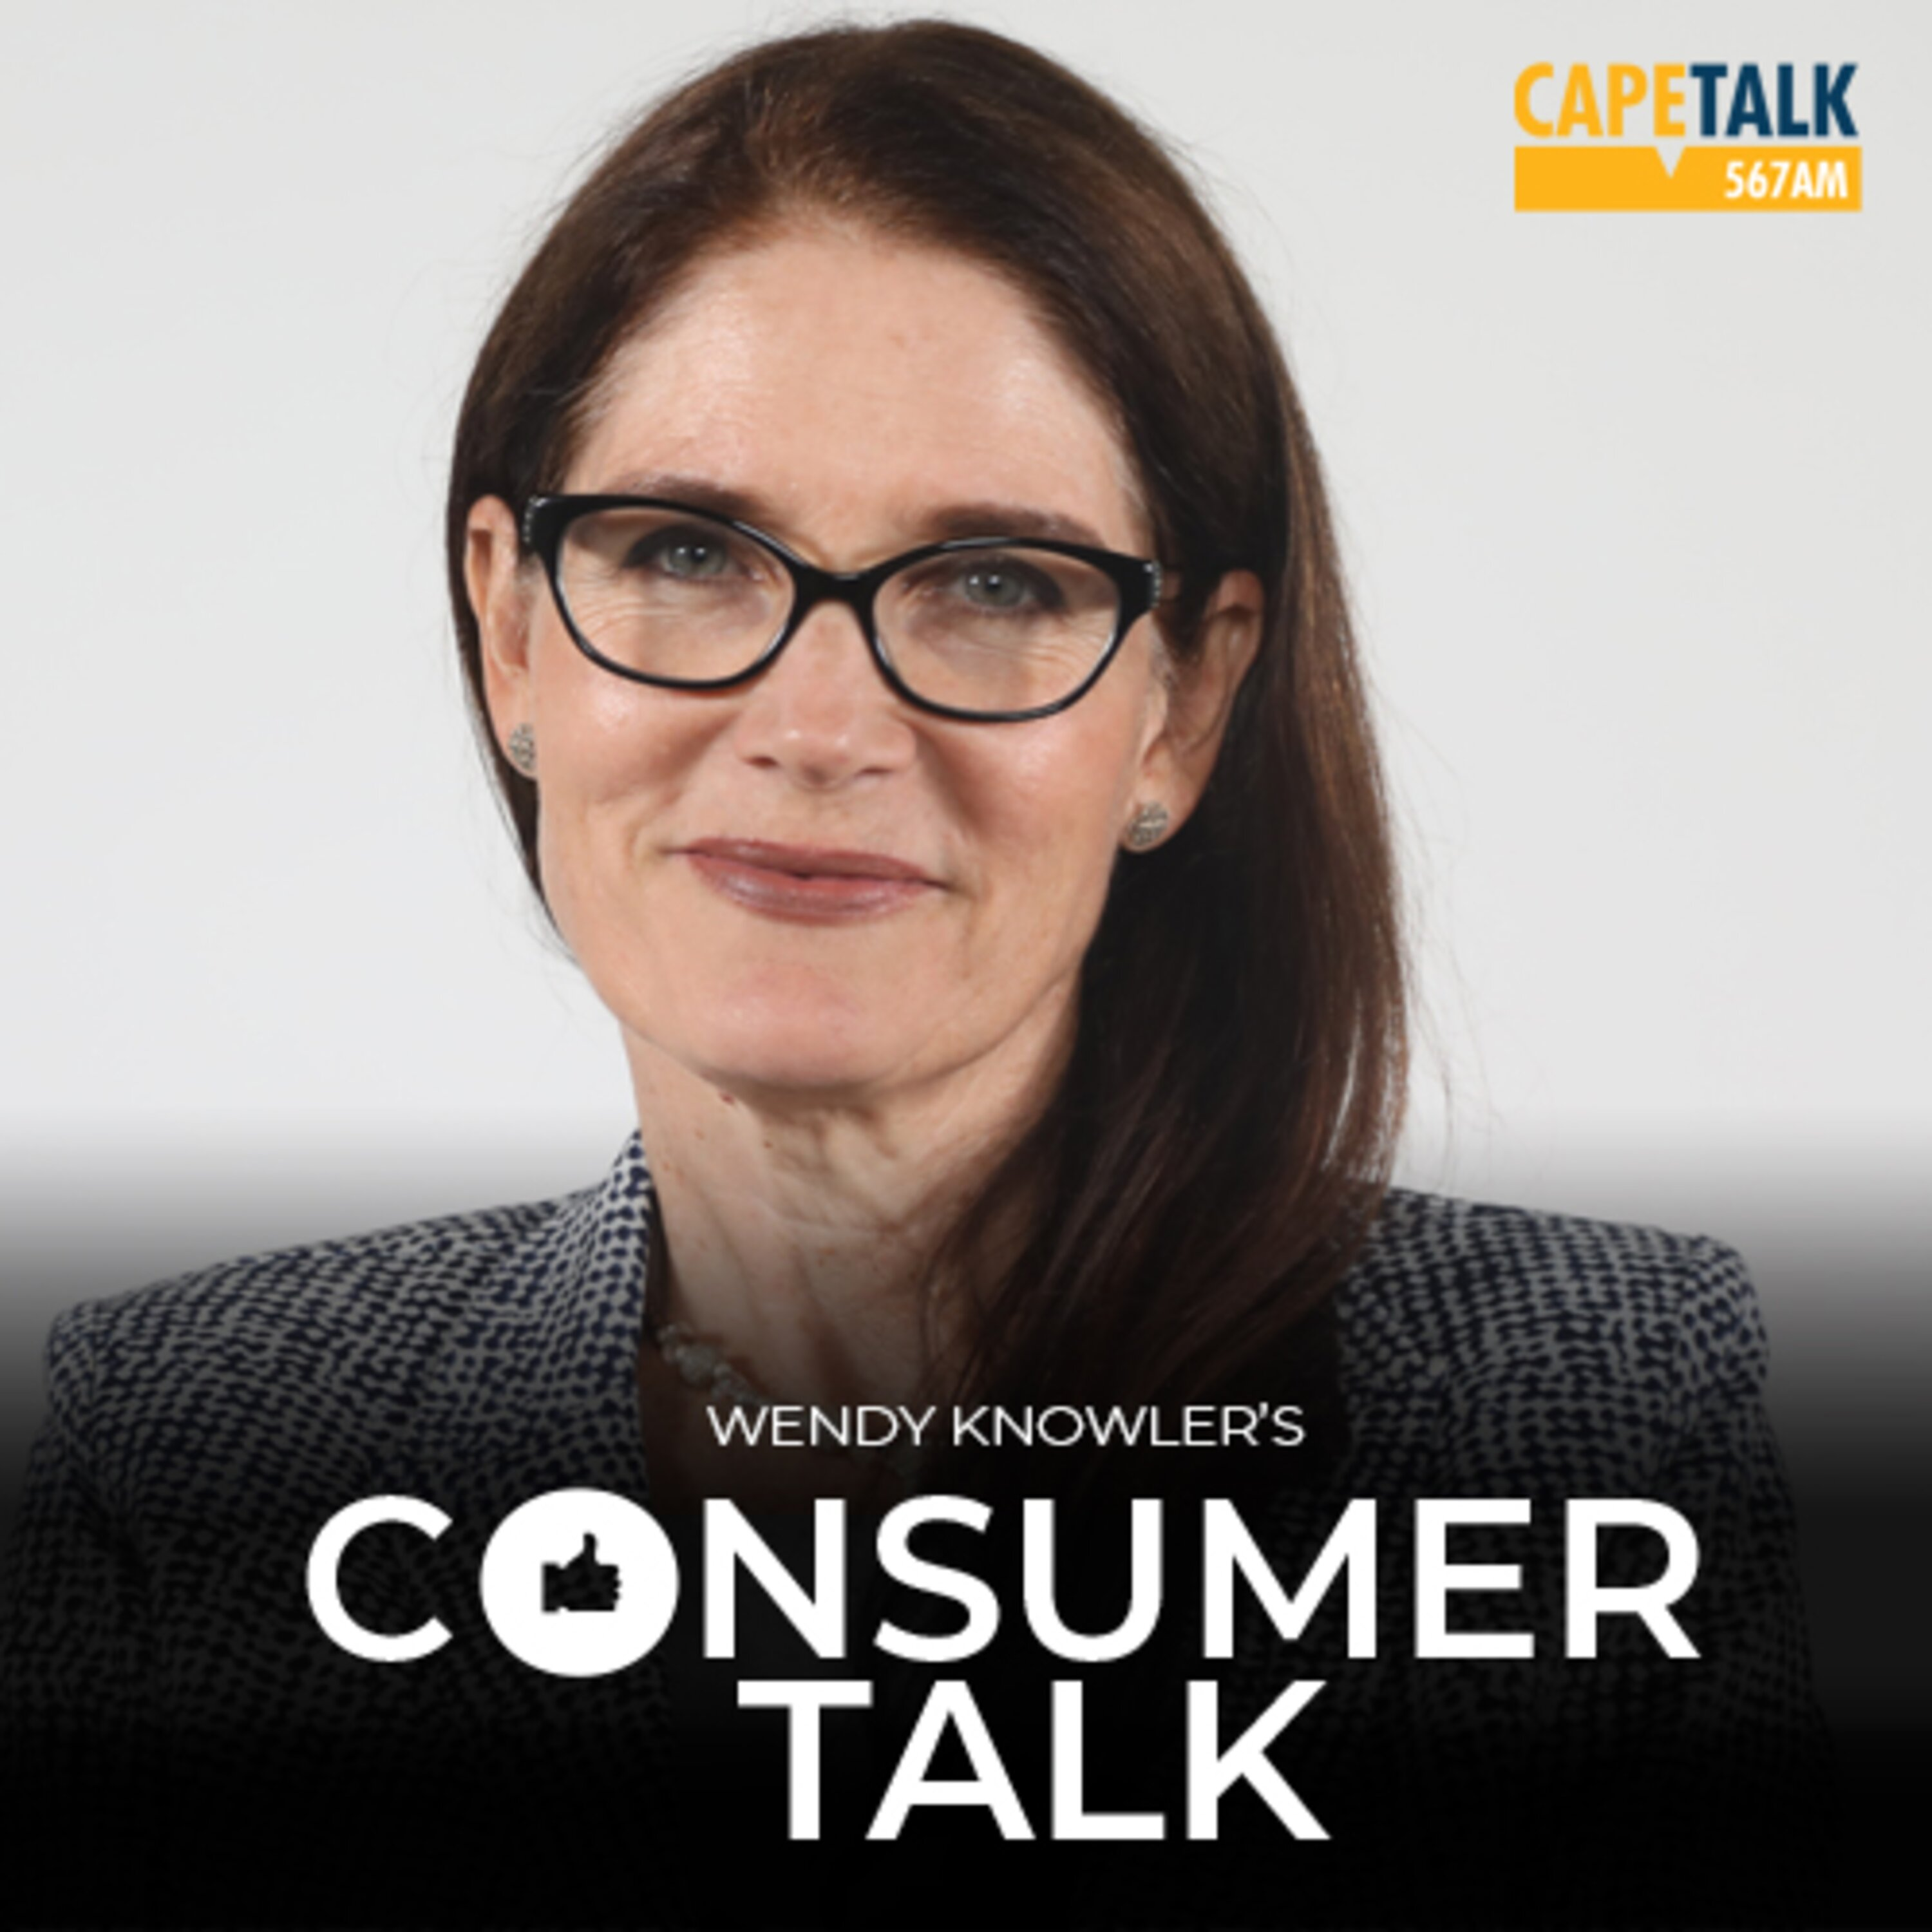 Consumer Talk with Wendy Knowler